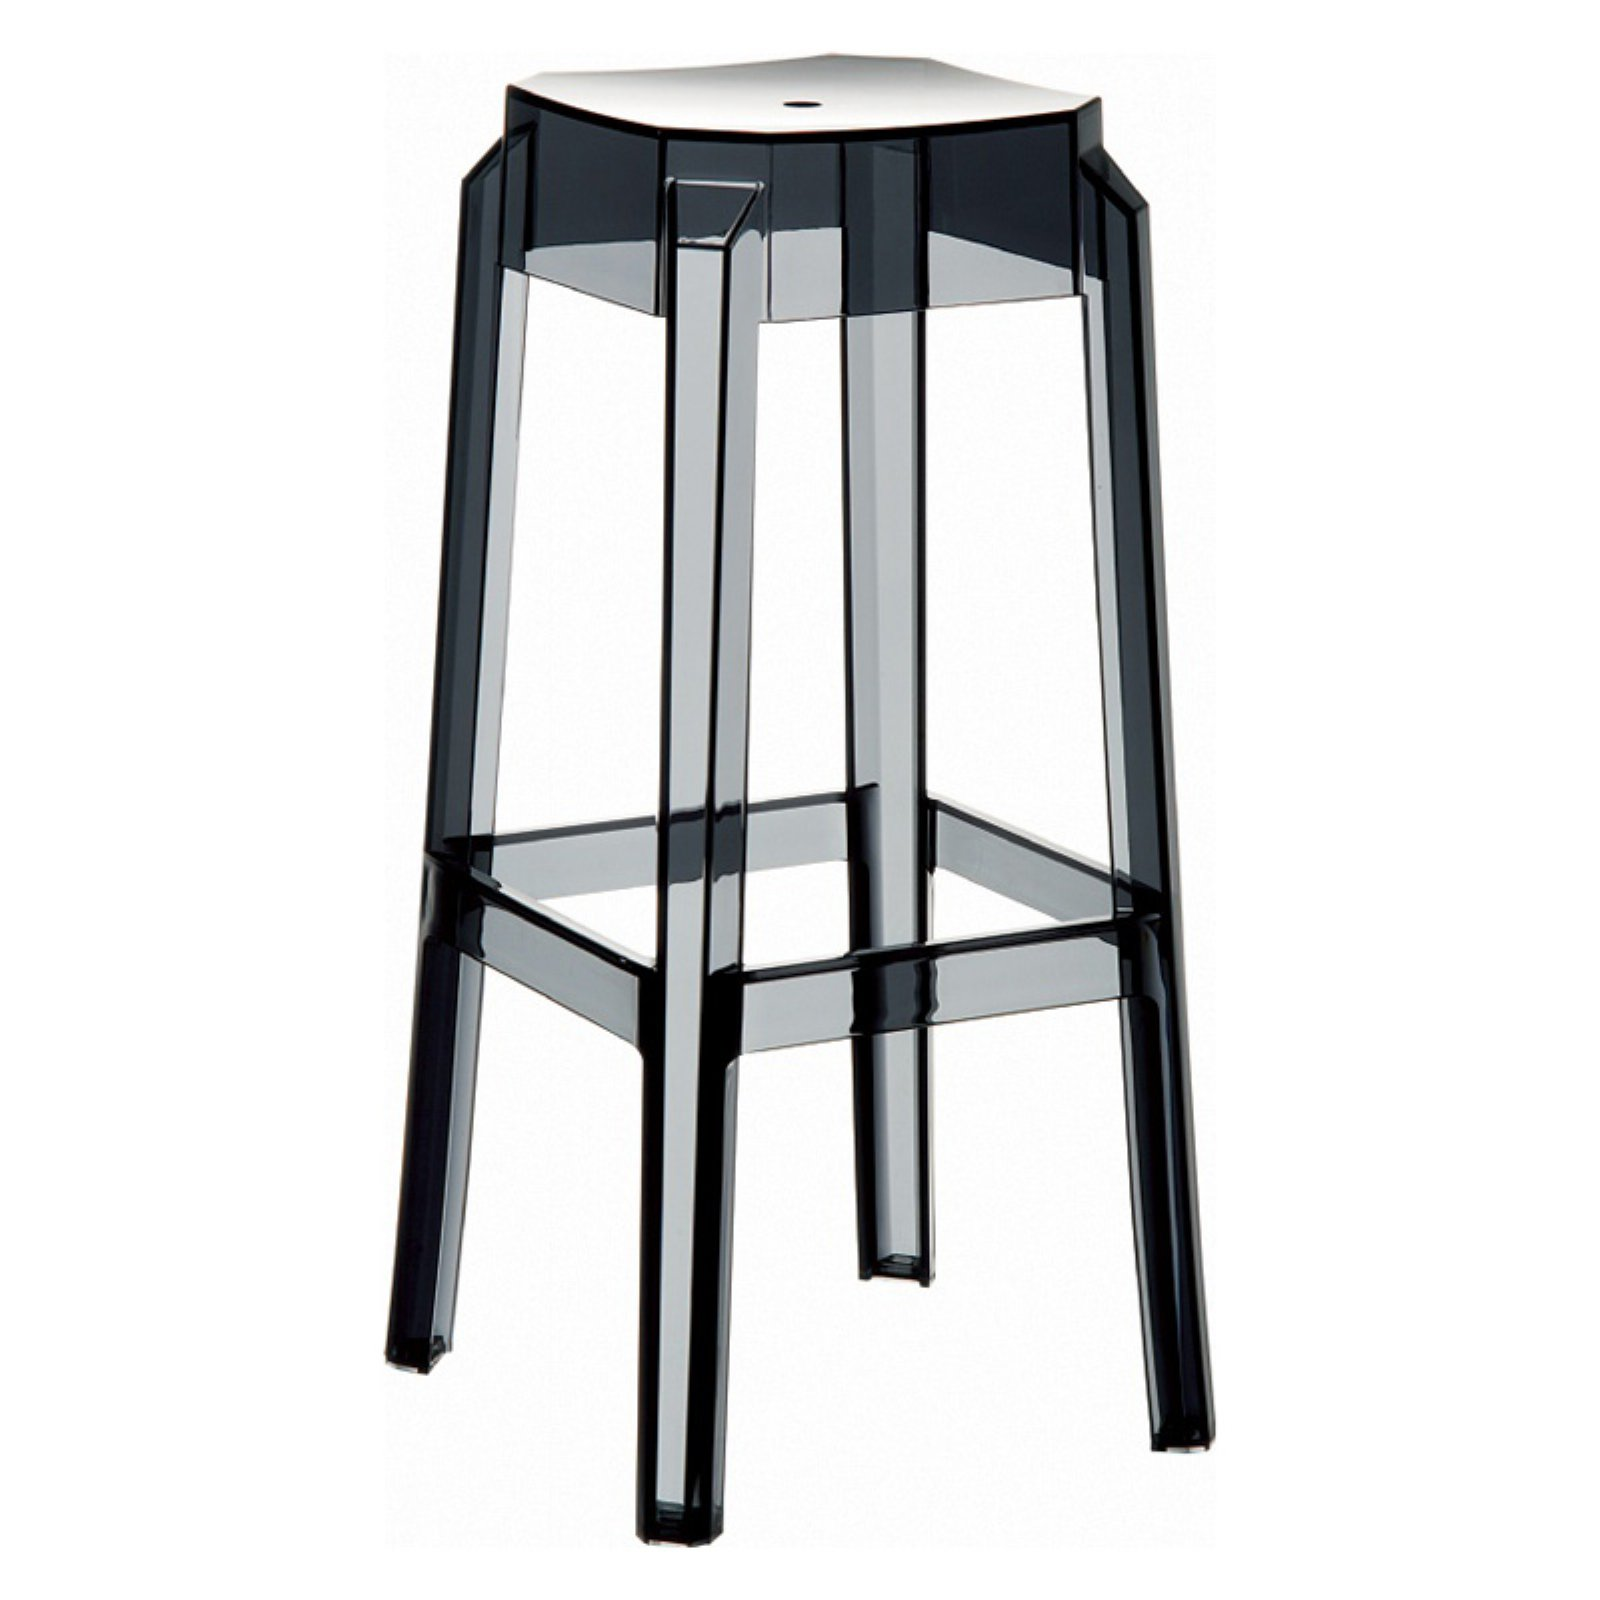 Siesta Fox 29.5 in. Polycarbonate Bar Stool - Set of 2